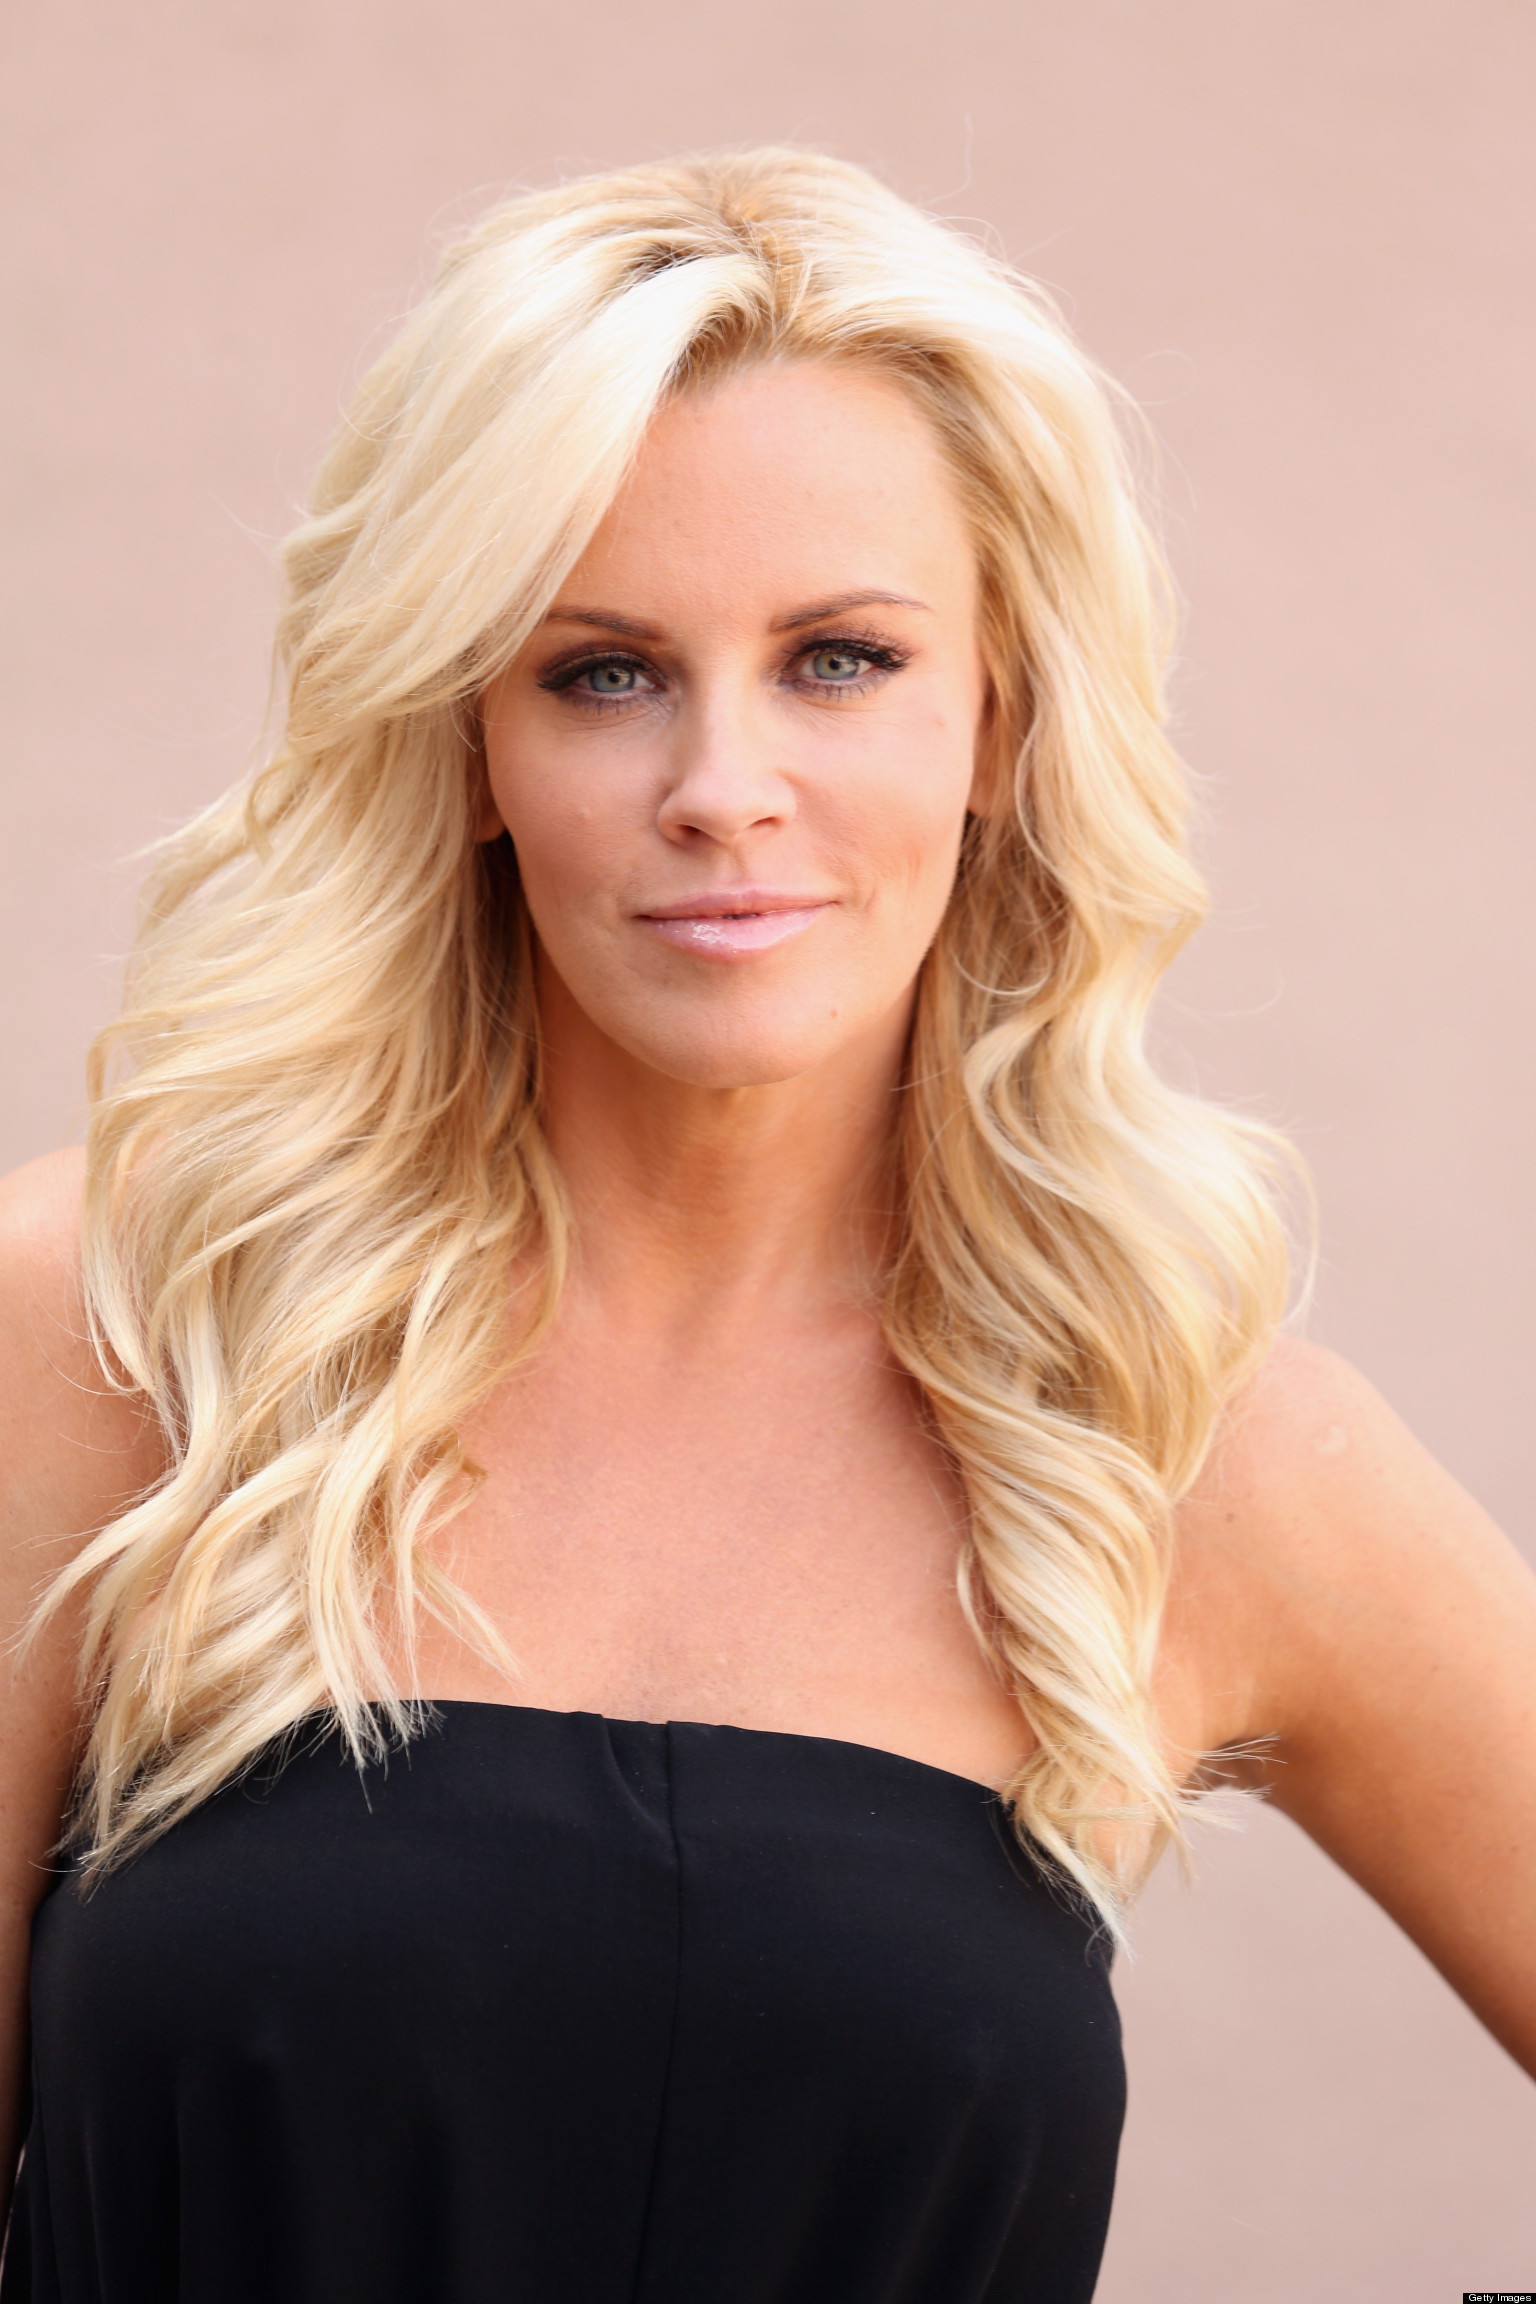 Nude photos of jenny mccarthy pic 16